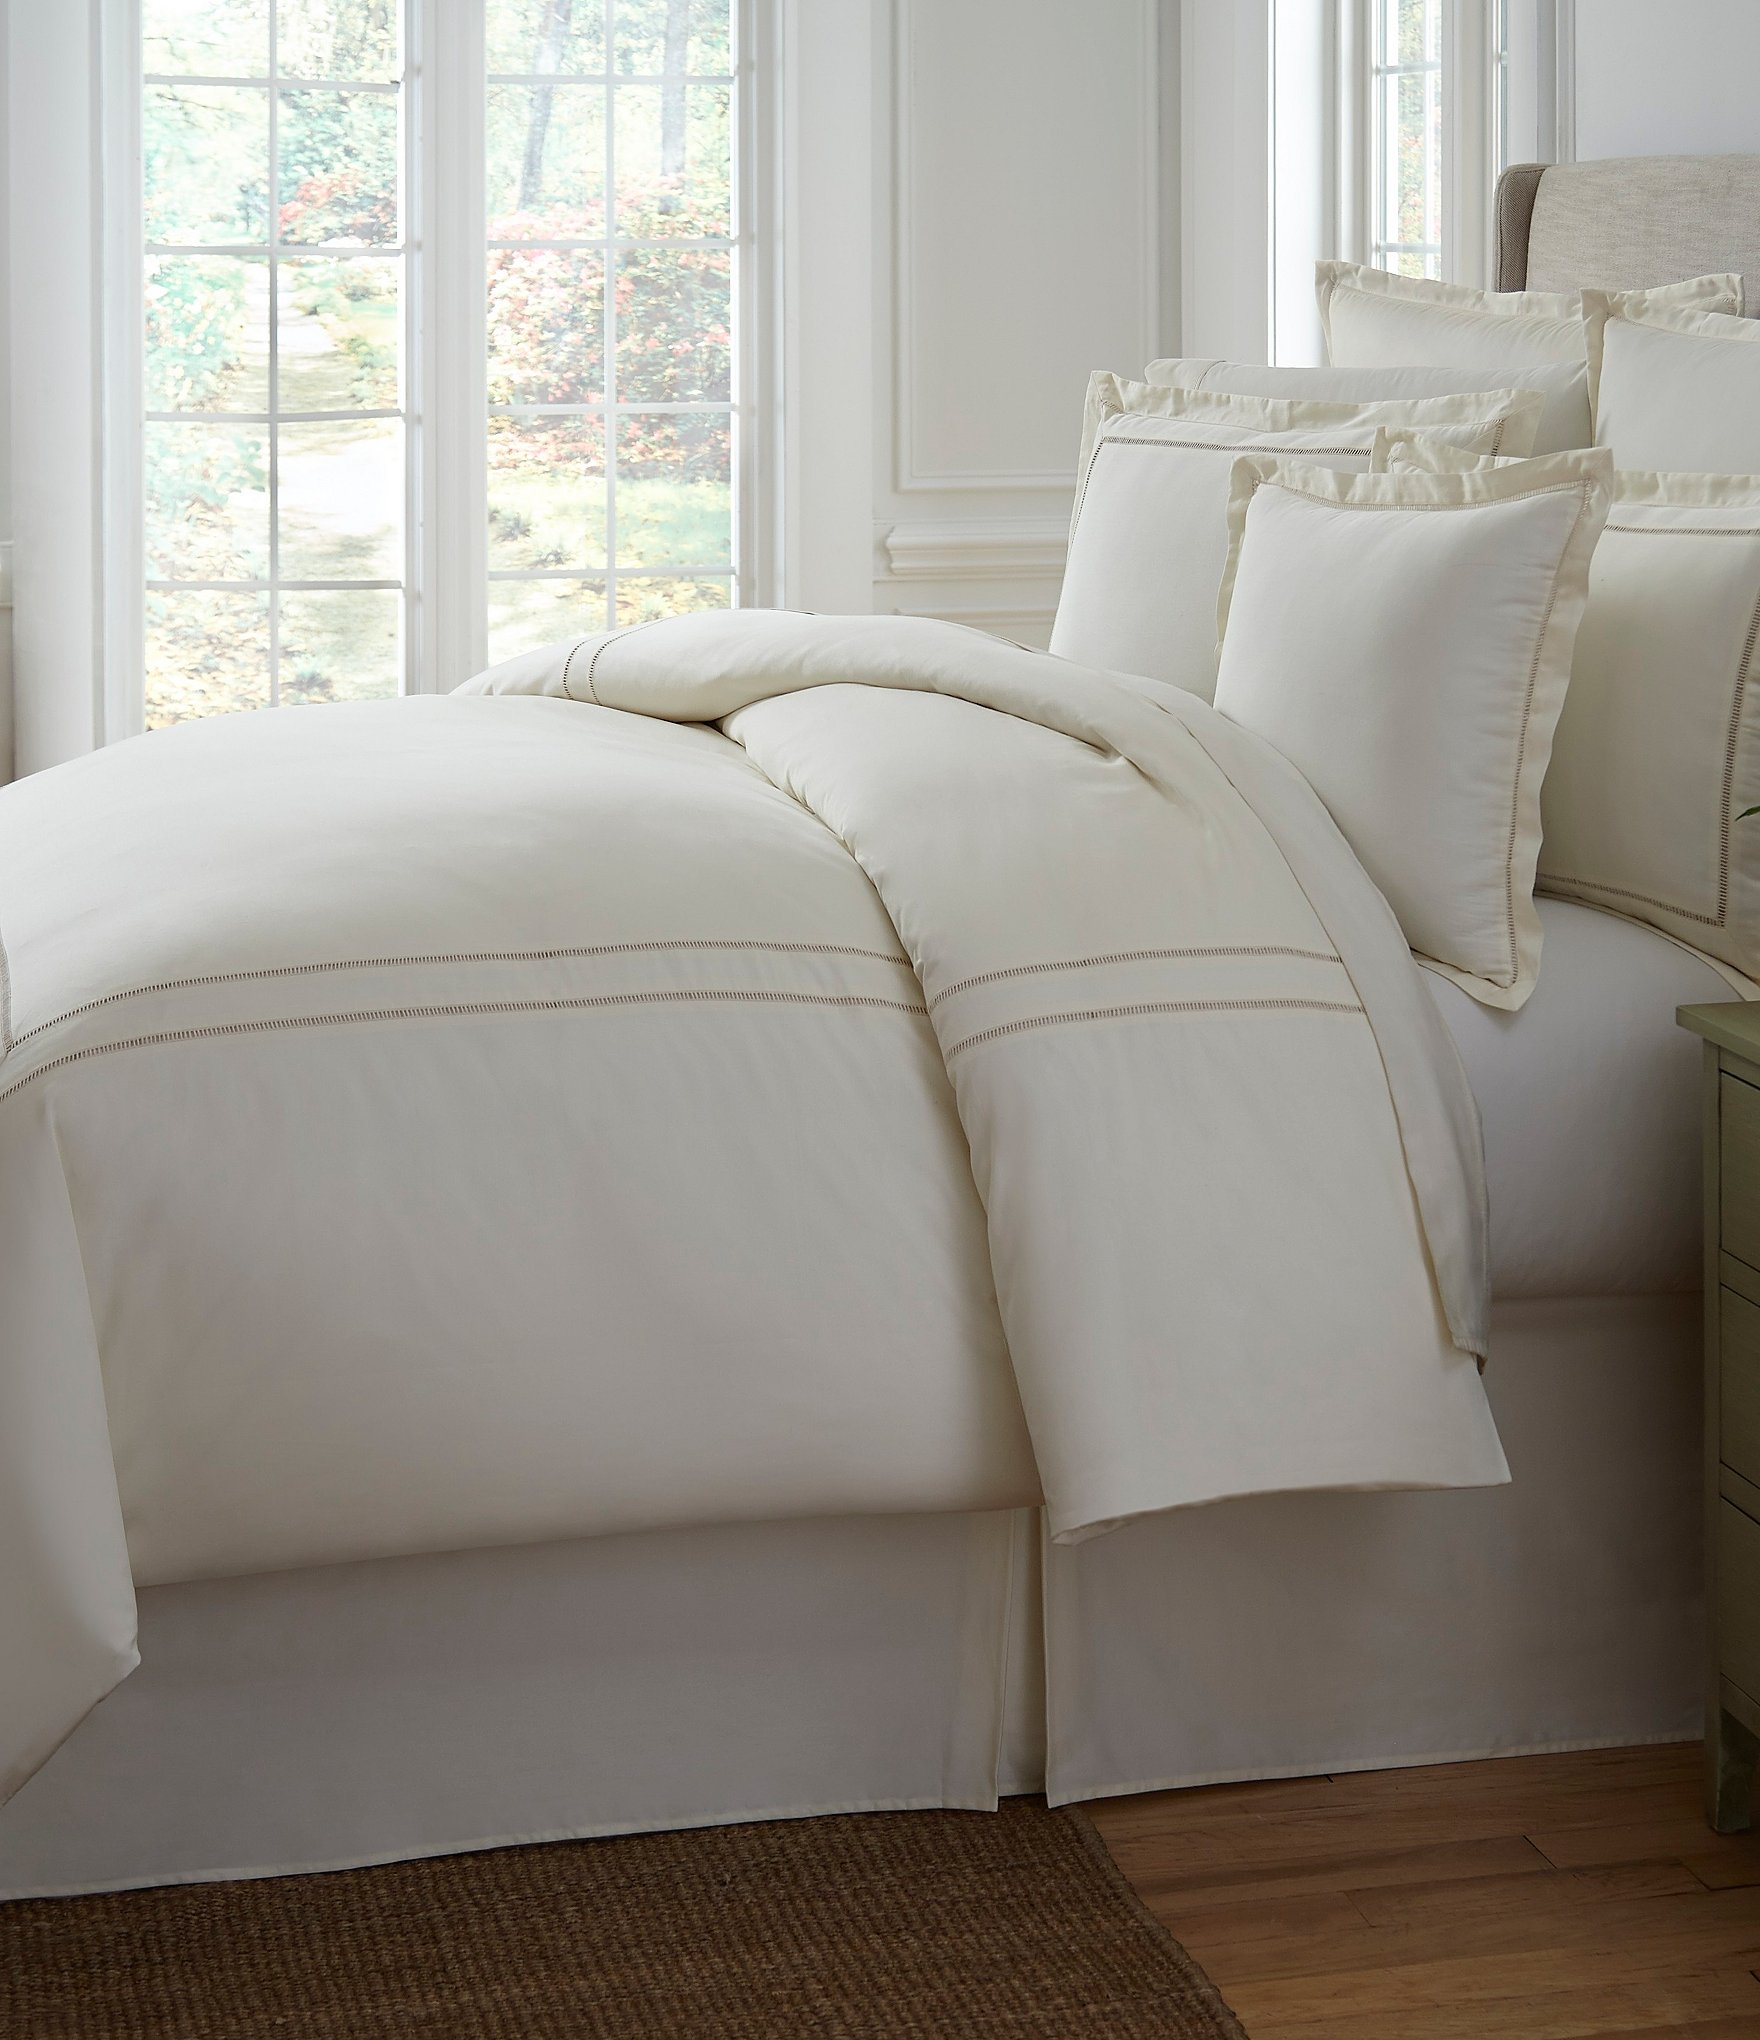 Southern Tide Bedding The Best 28 Images Of Southern Tide Bedding Southern Tide Bedding Photos